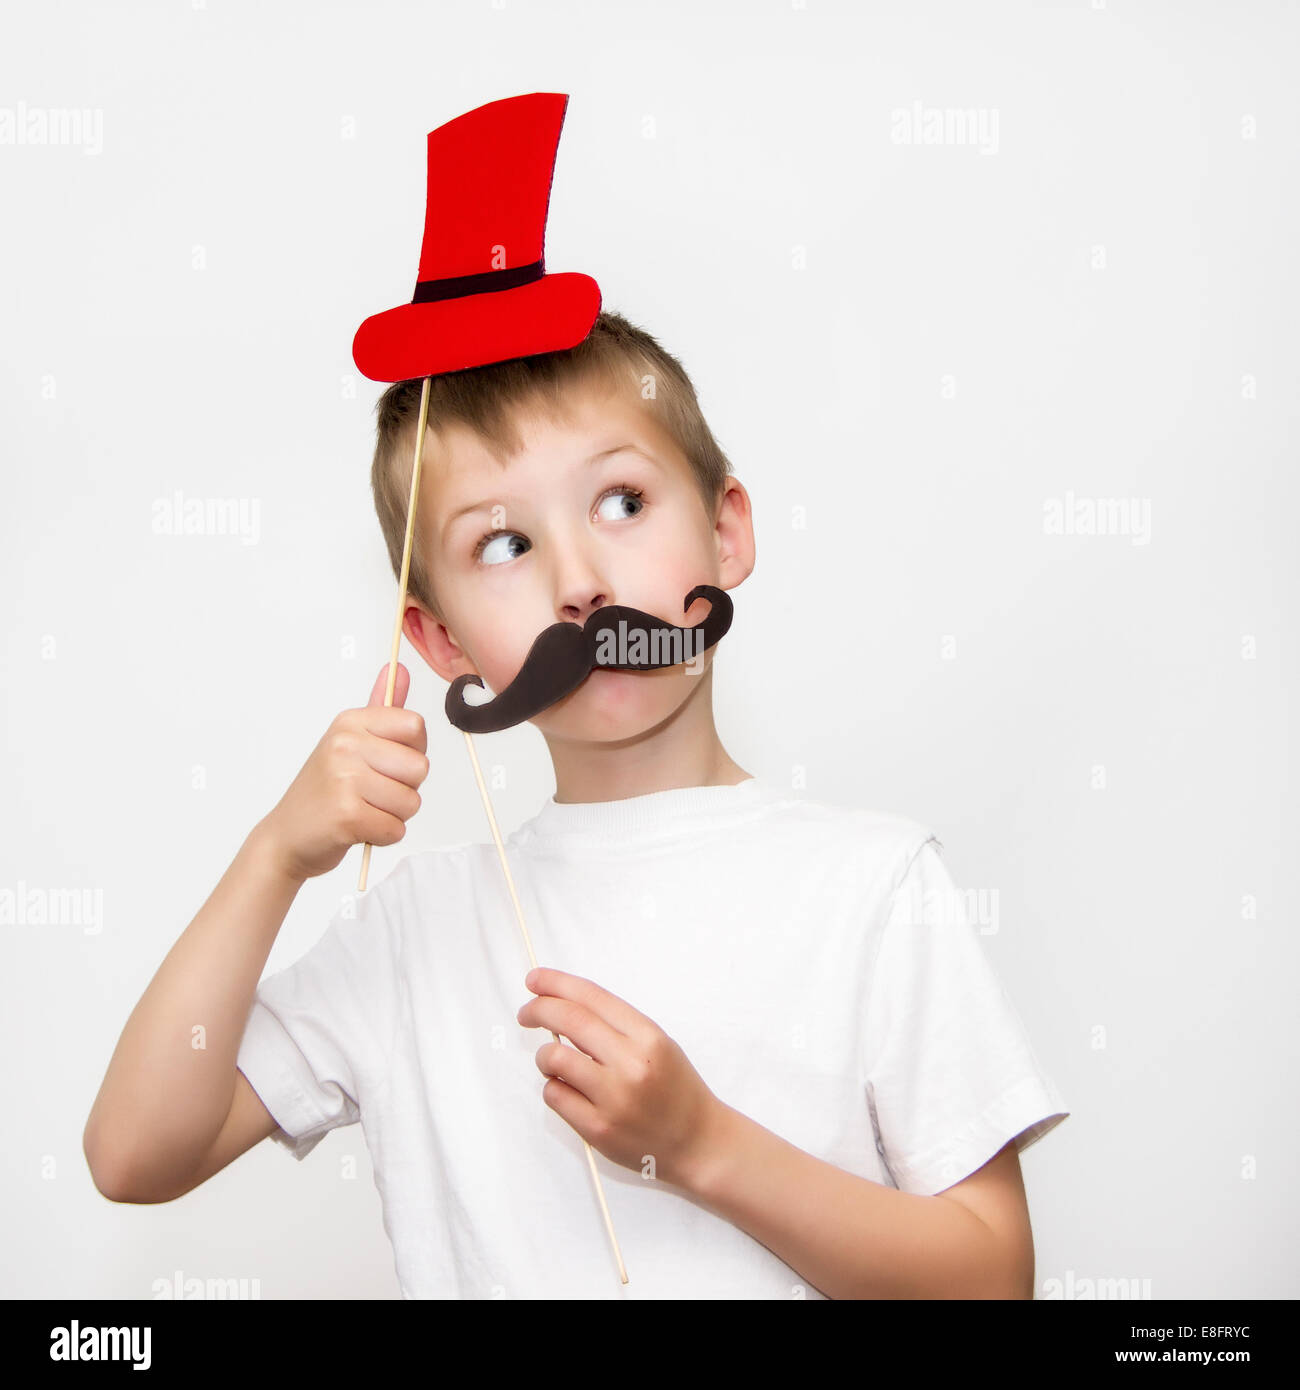 Boy with moustache and hat masks - Stock Image